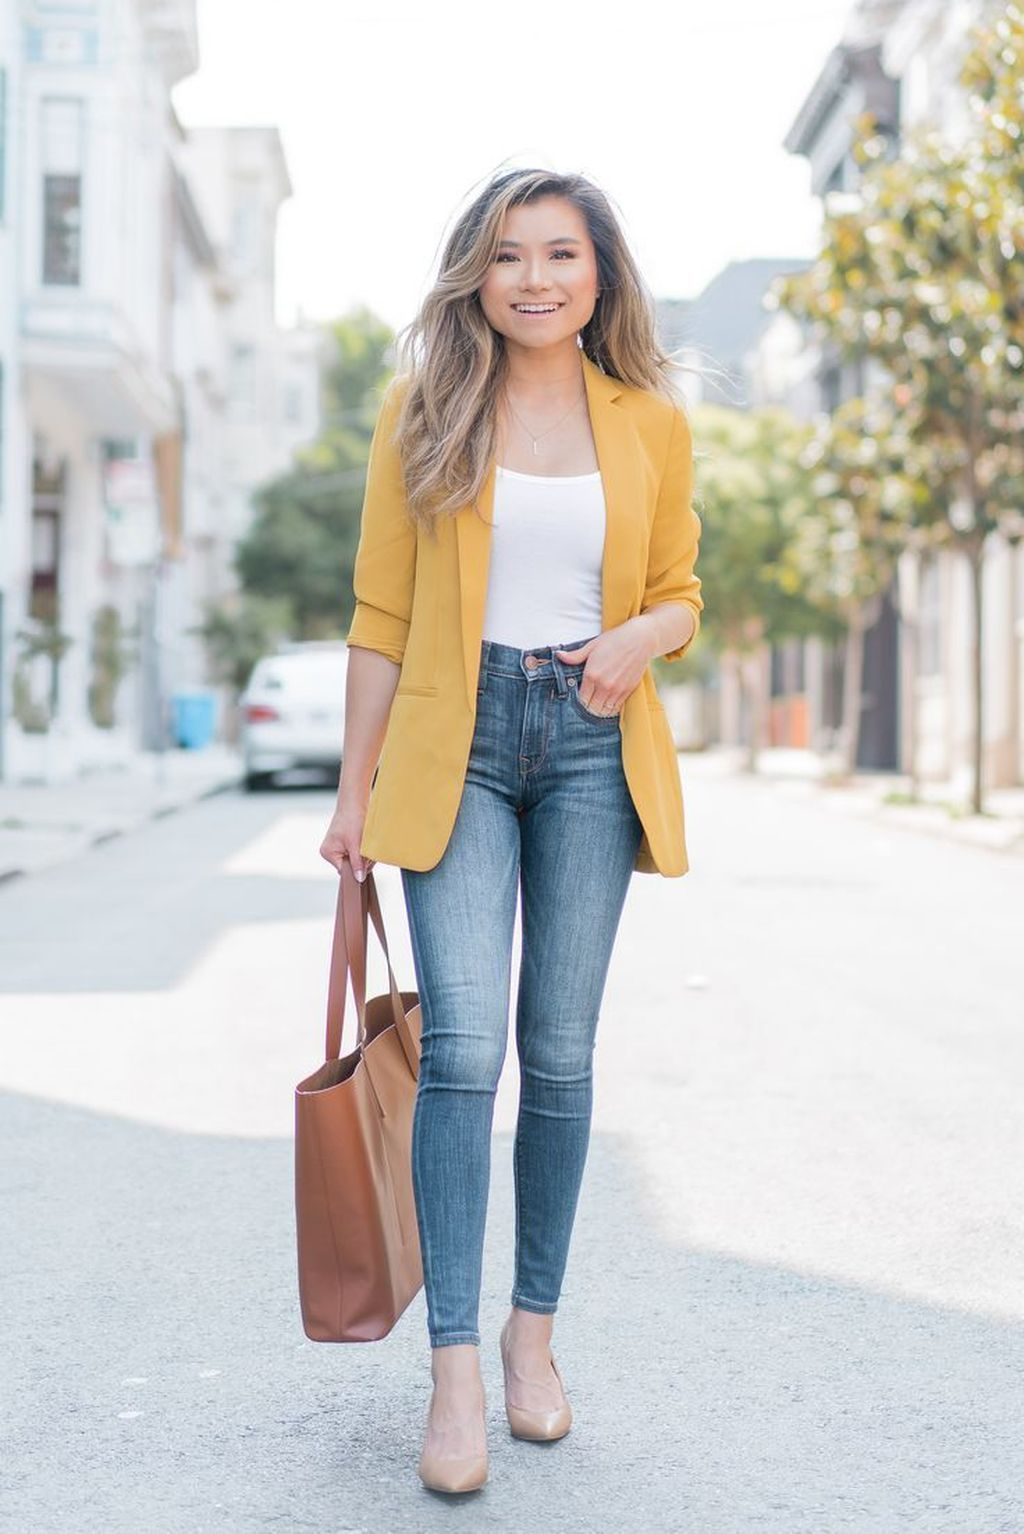 23 Inspiring Women Spring Jeans Outfit Ideas For Work  Smart